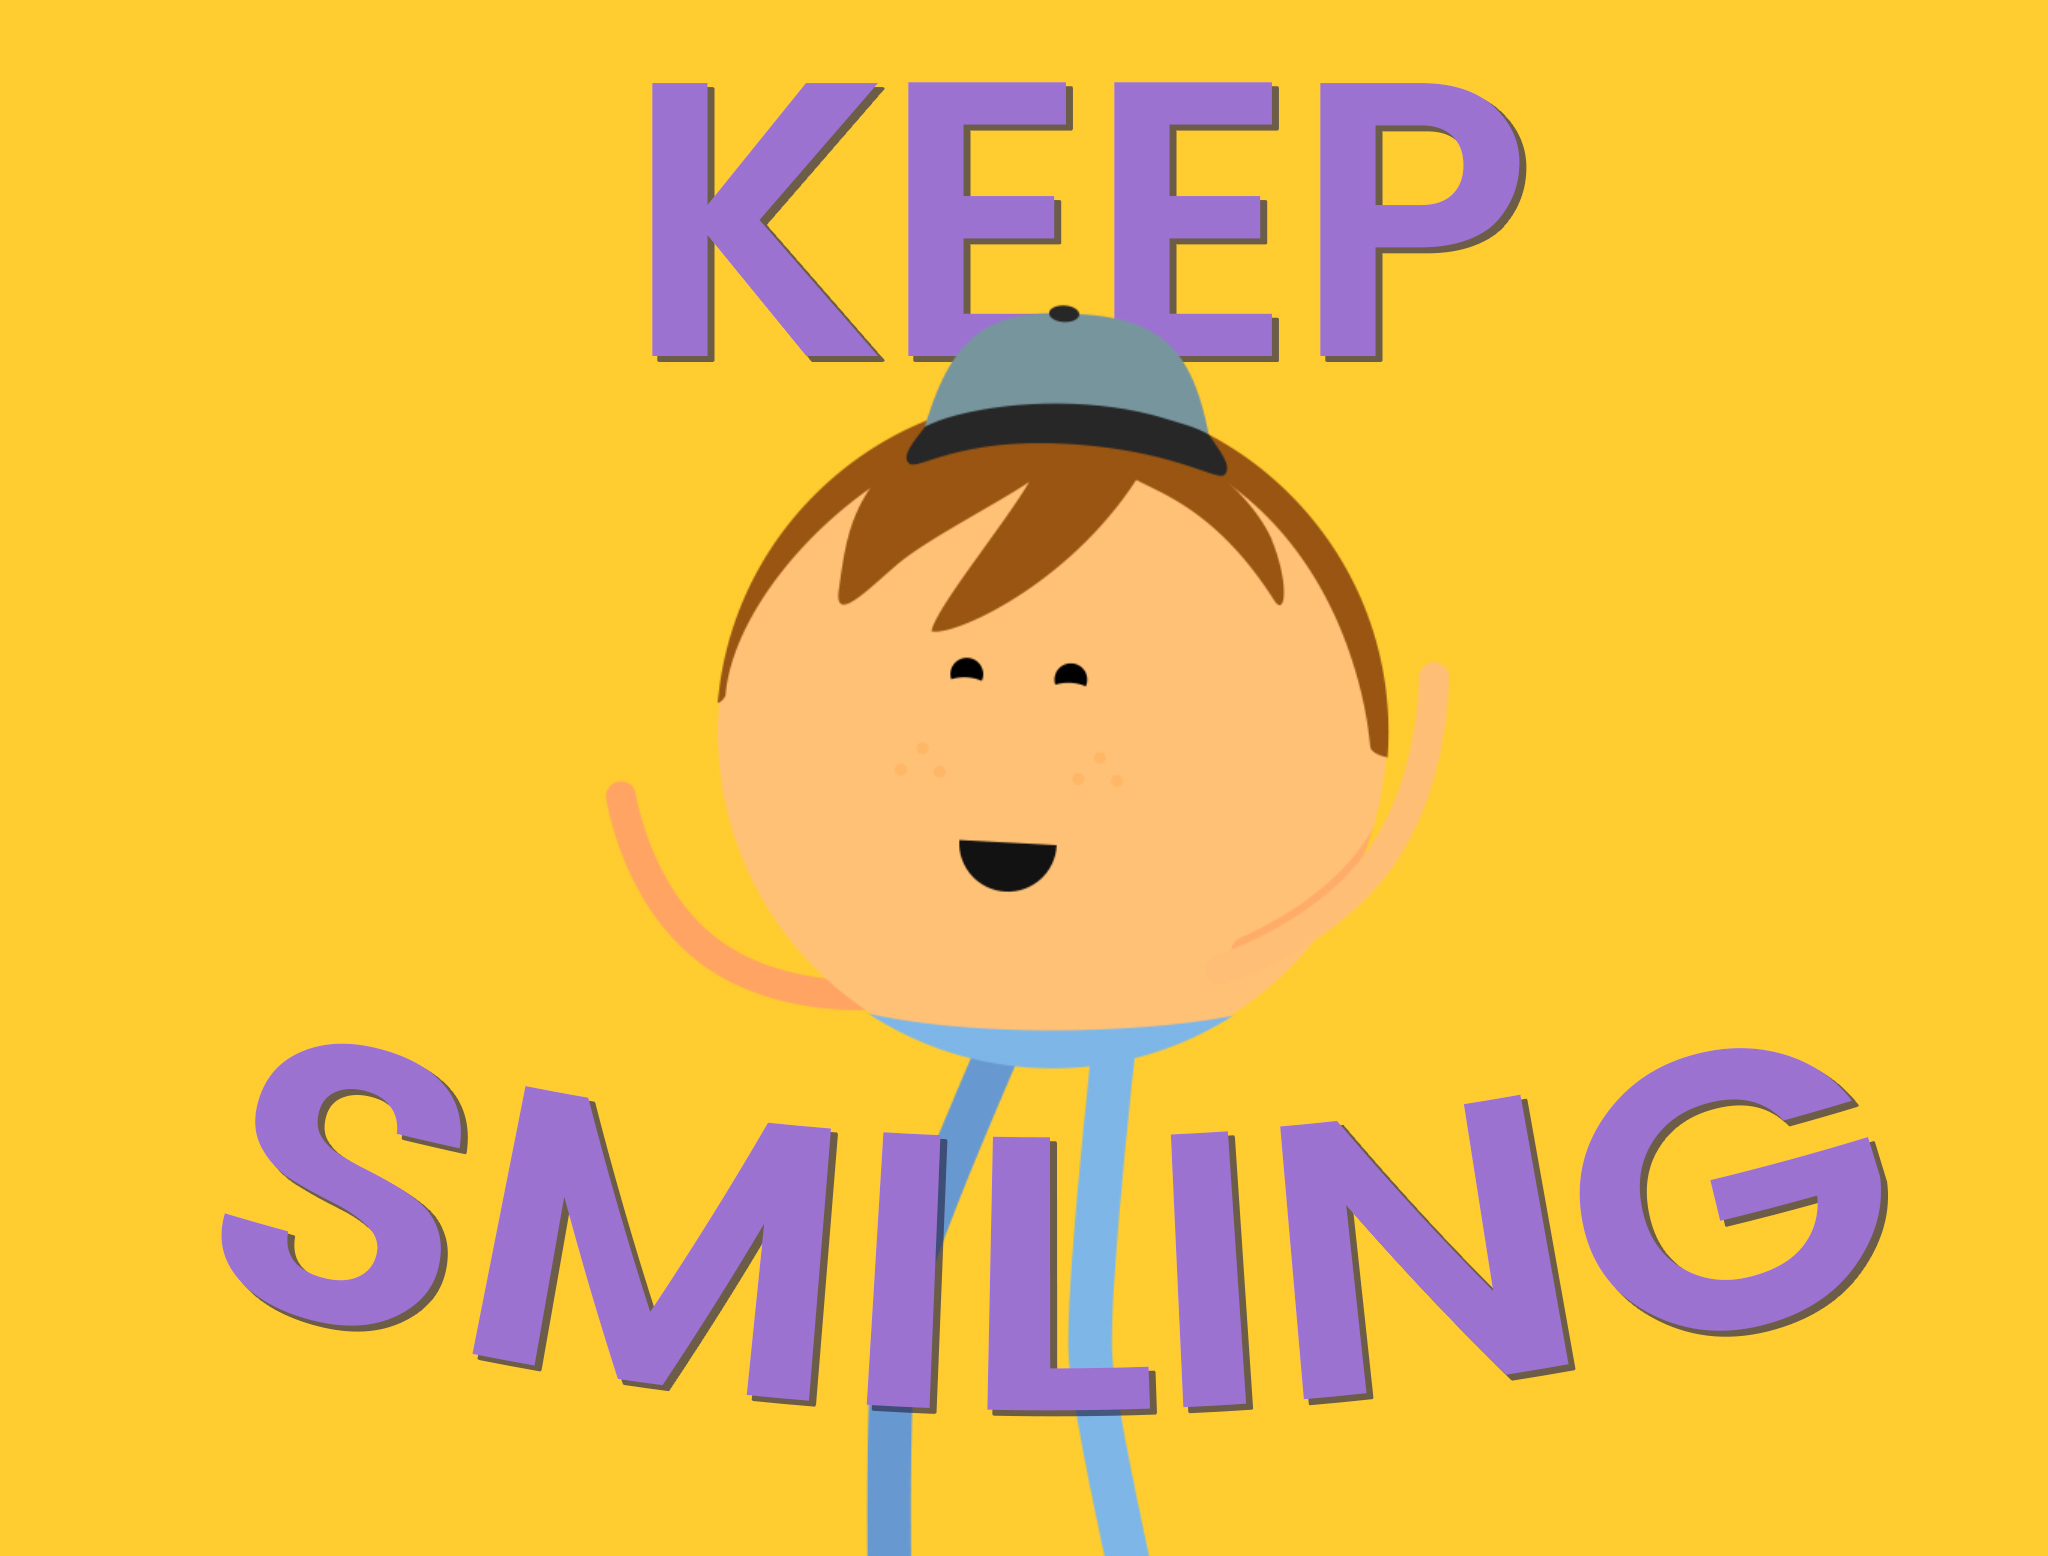 Words Keep Smiling - cartoon character smiling